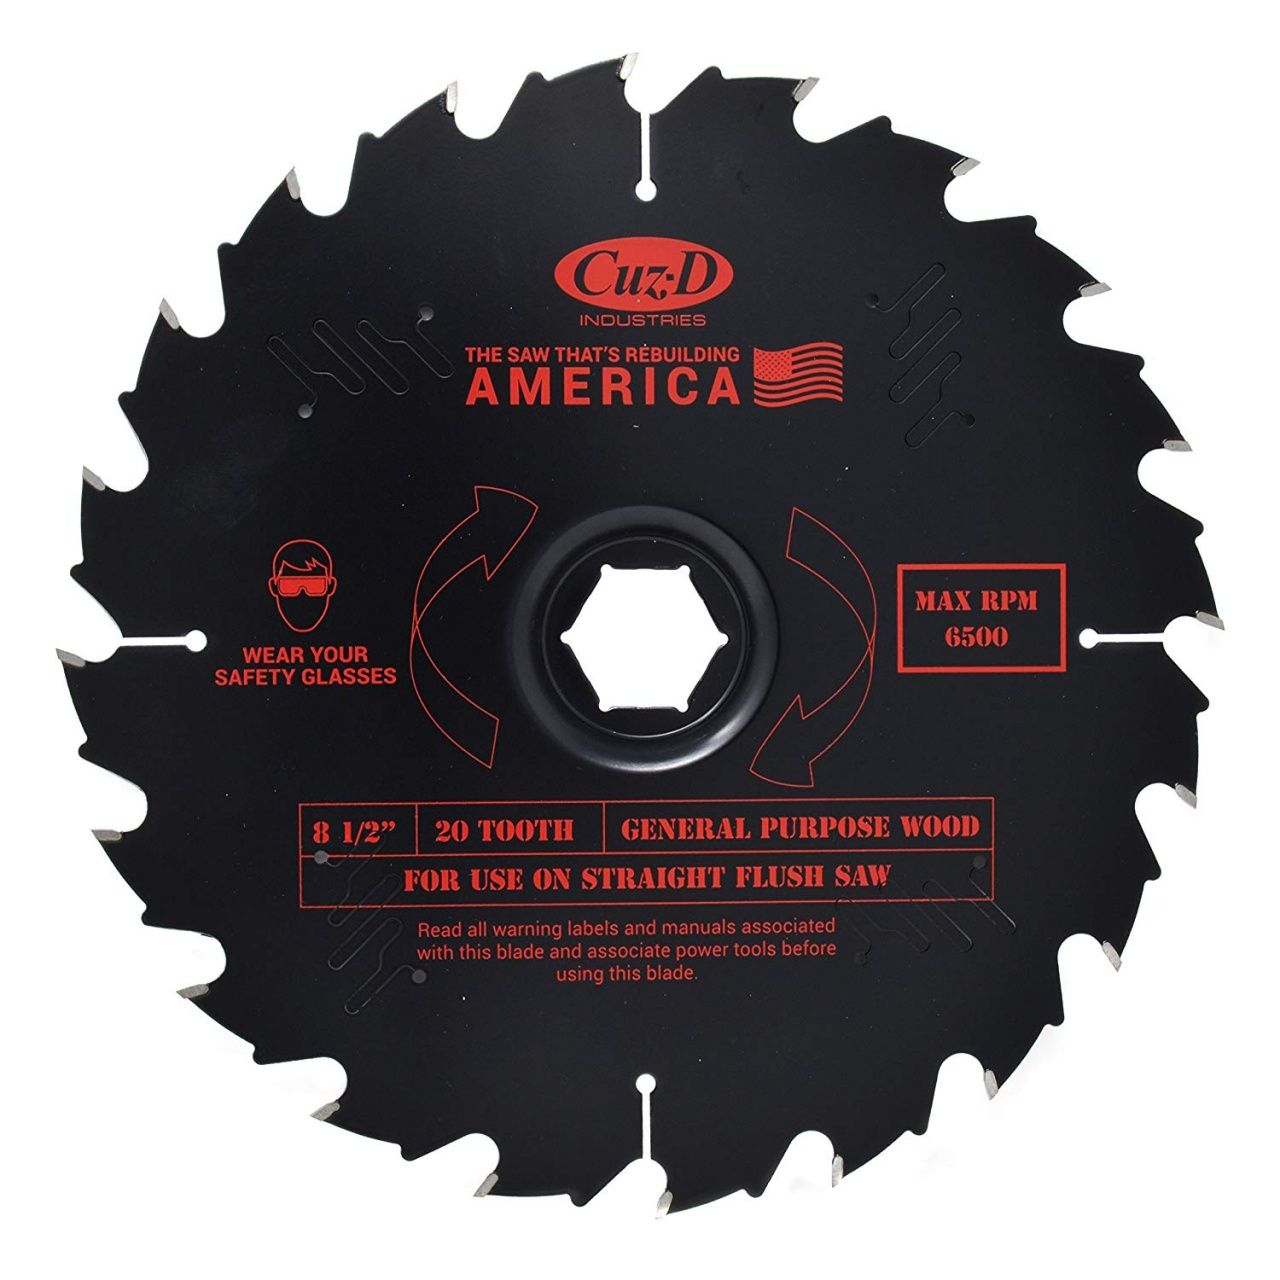 Saw Blade For Laminate Flooring In 2020 Circular Saw Blades Laminate Flooring Laminate Wood Flooring Cost